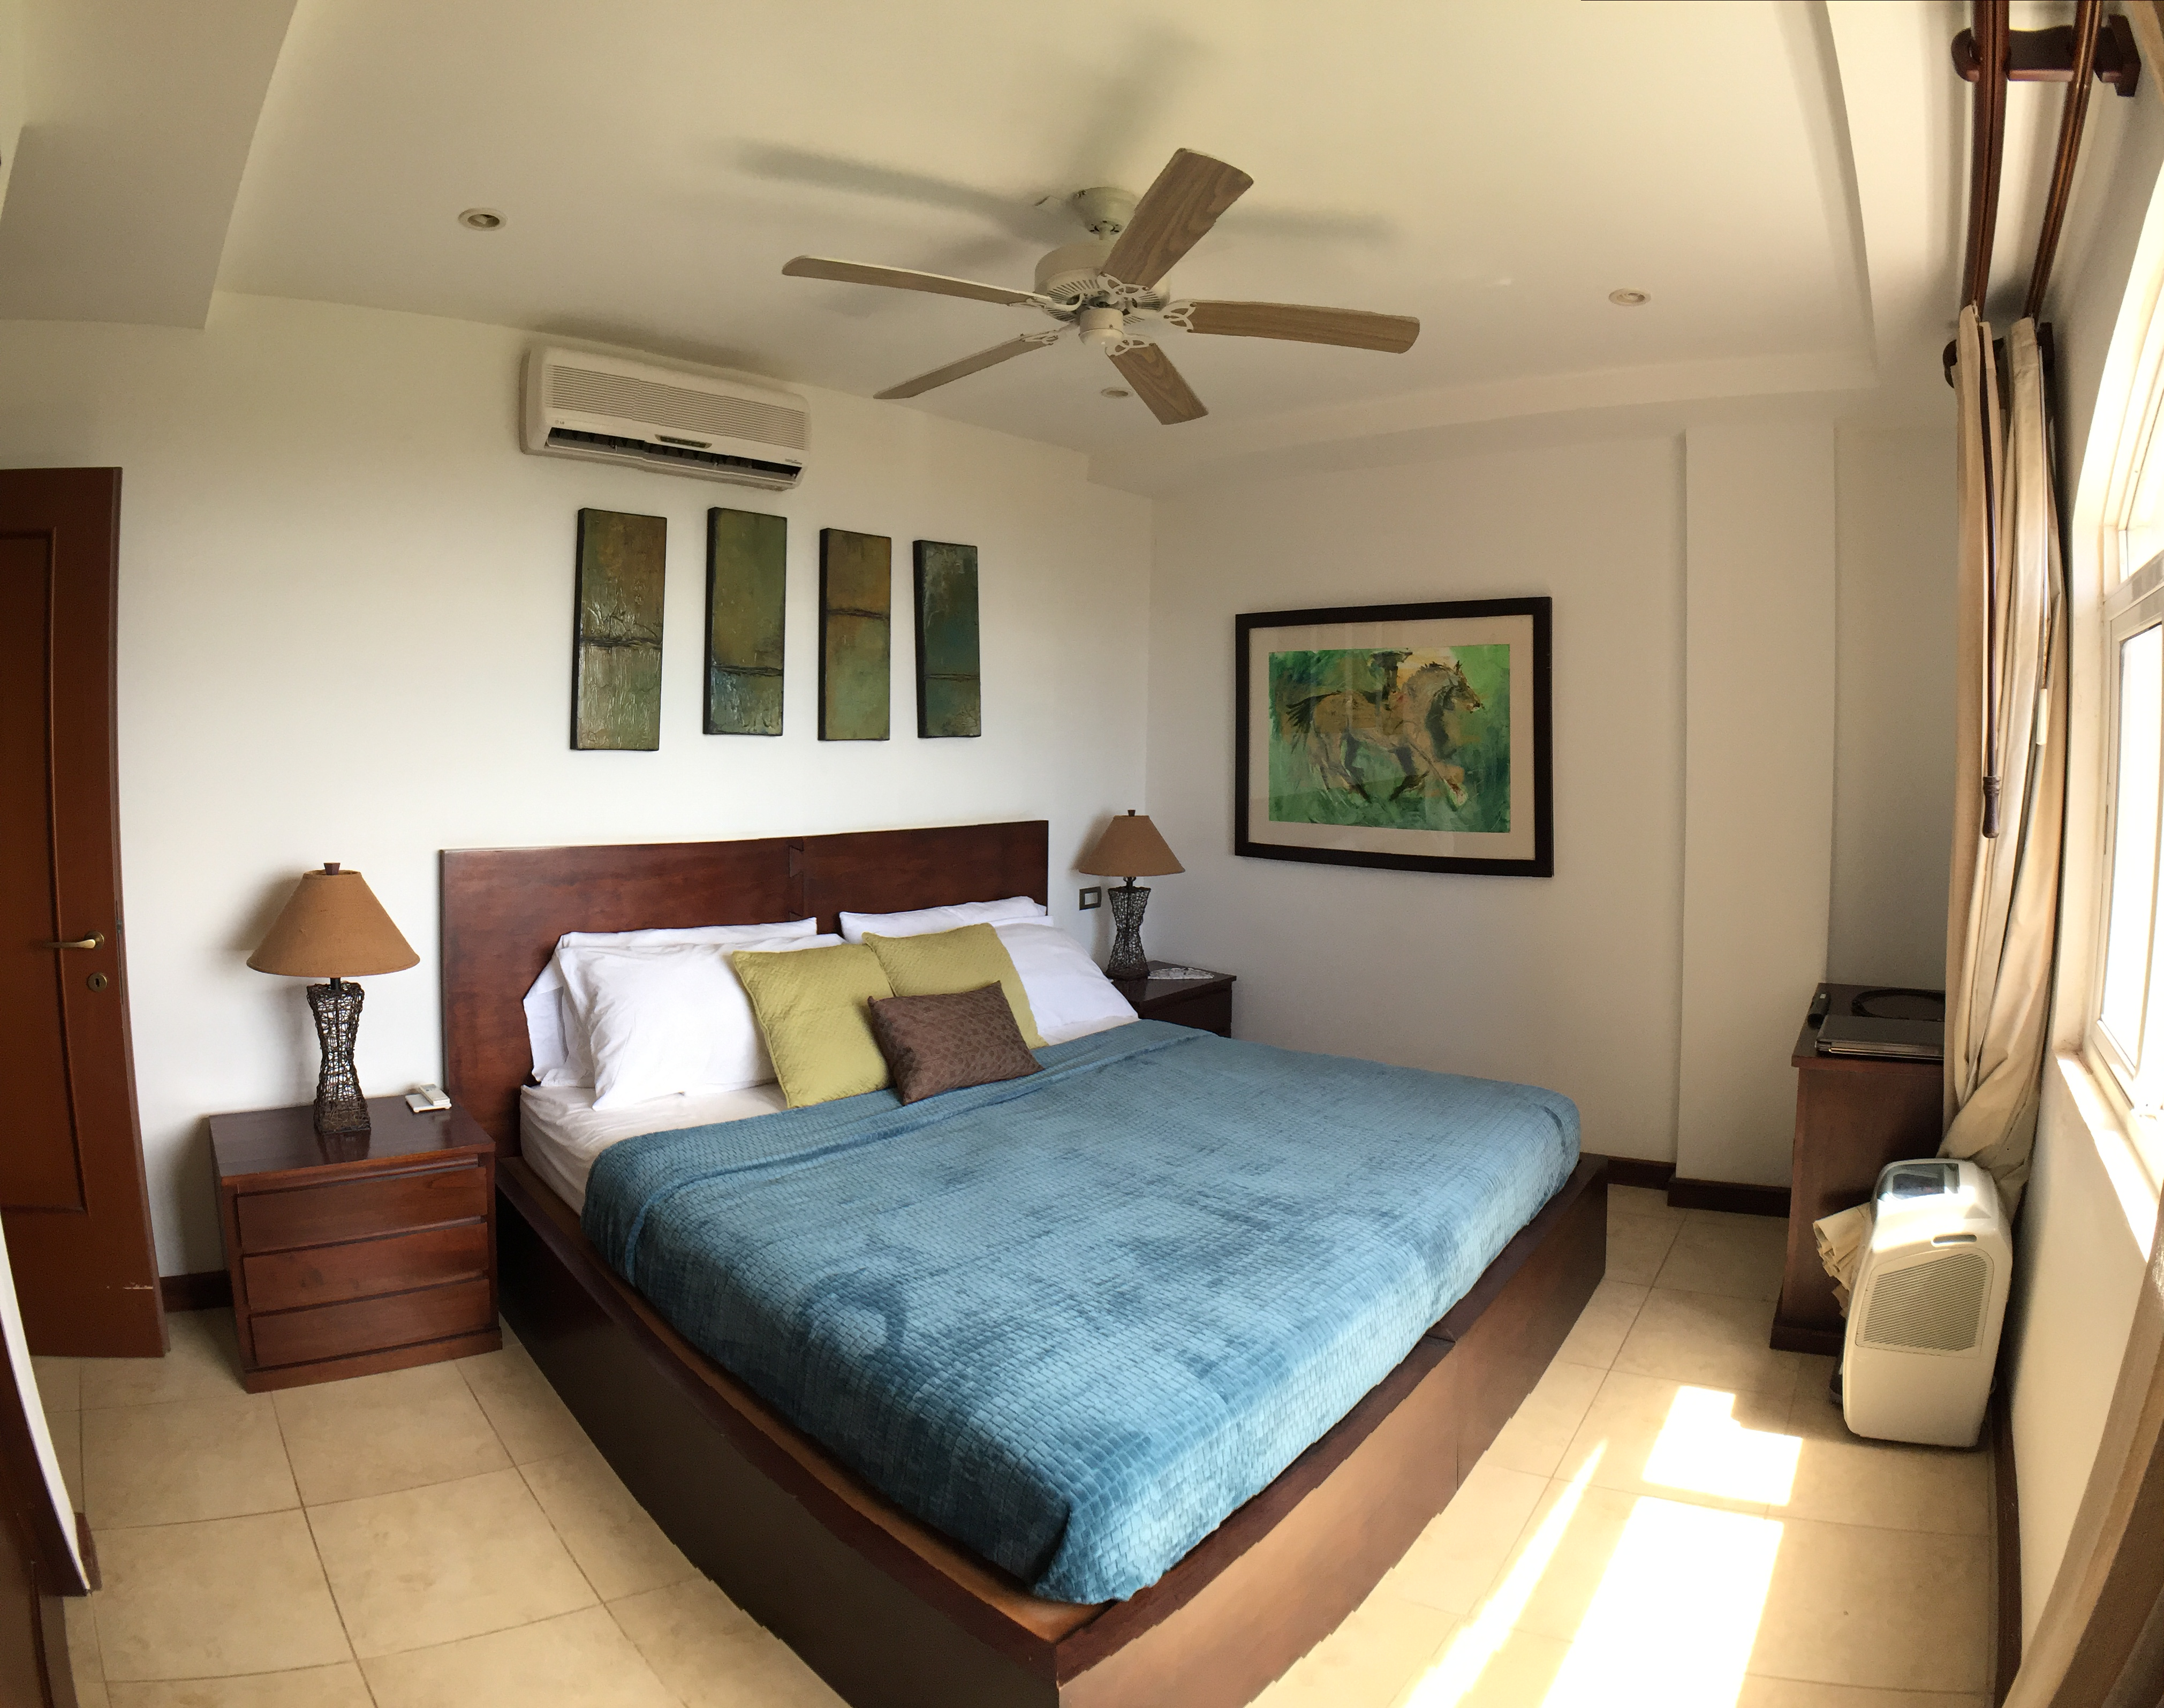 additional view of guest bedroom